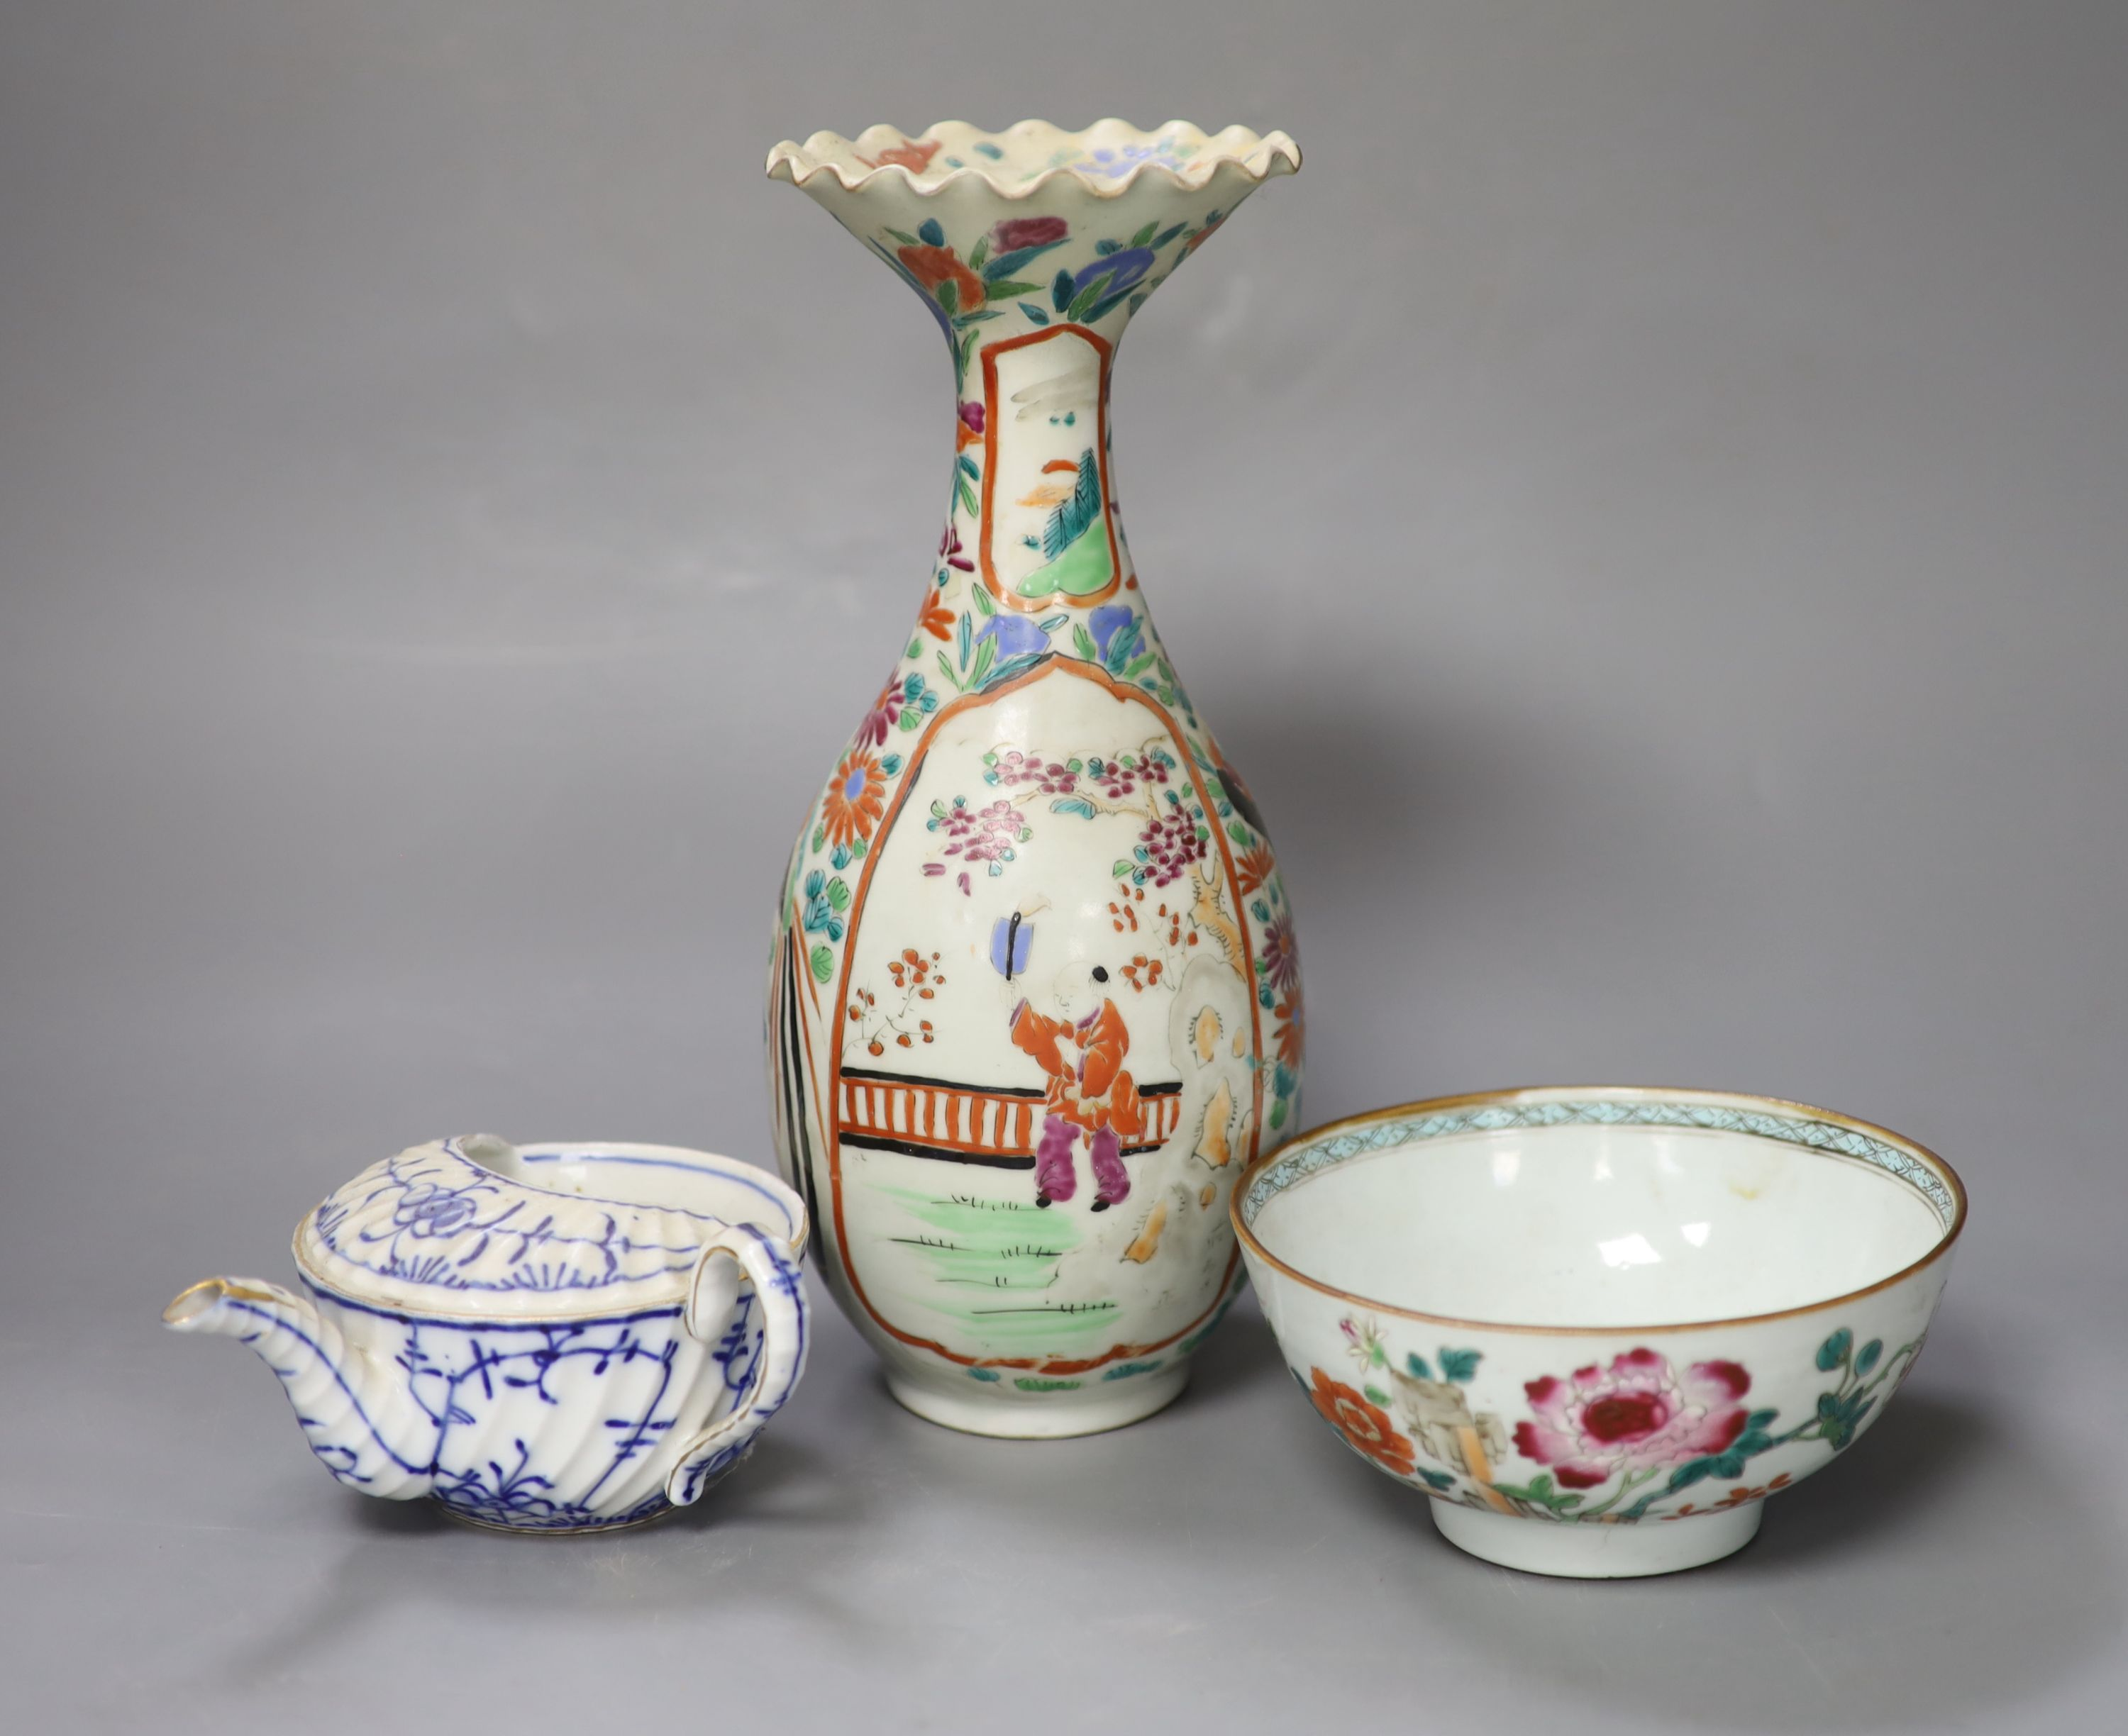 An 18th century Chinese famille rose bowl, a Japanese porcelain vase and and invalid cup, tallest